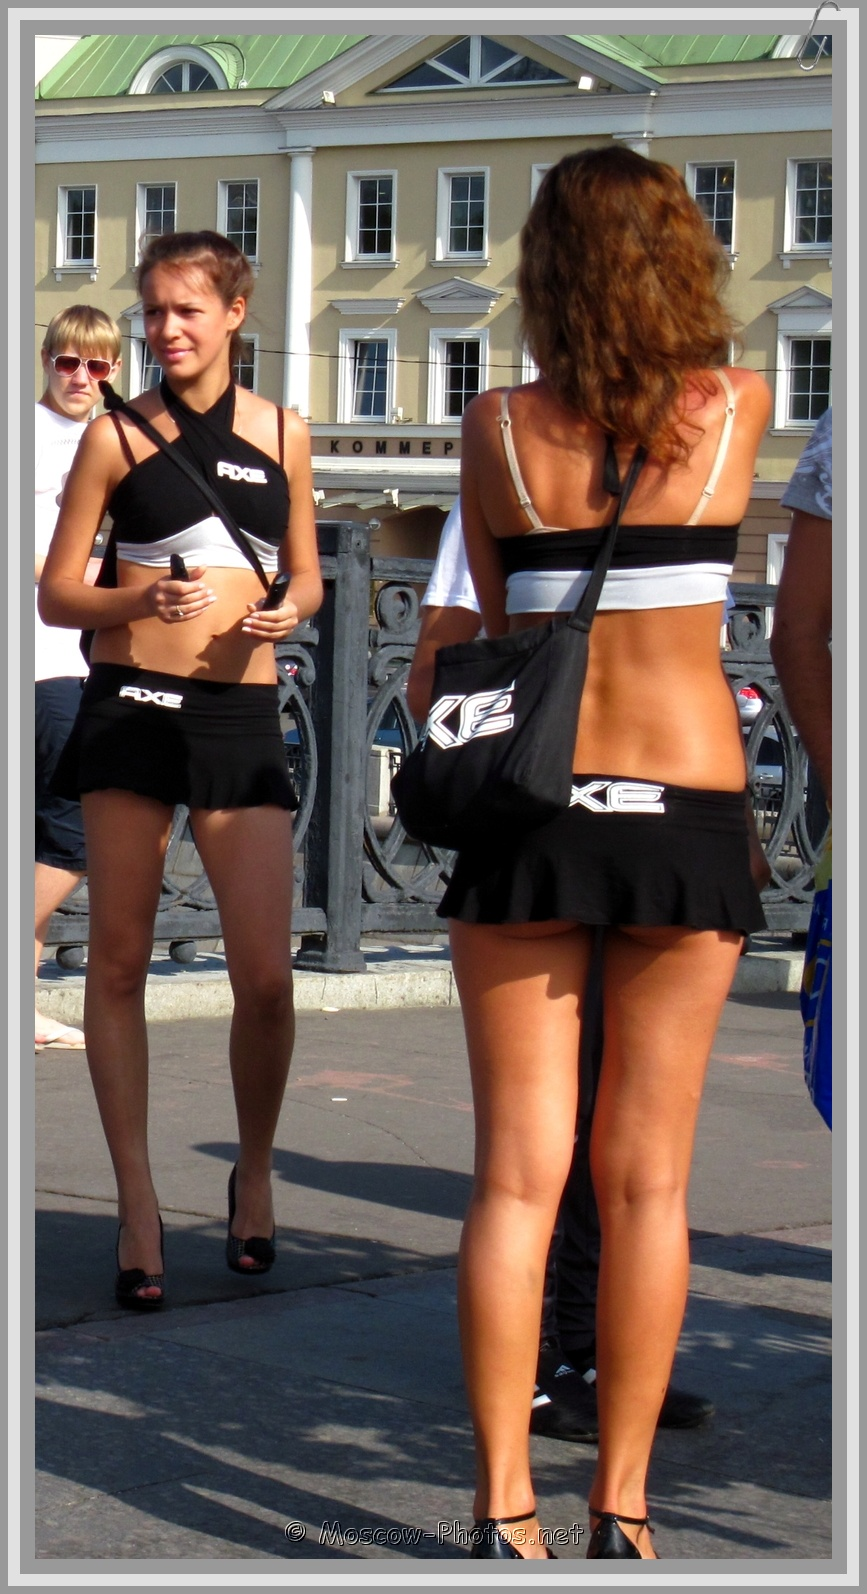 AXE girls in black micro skirts